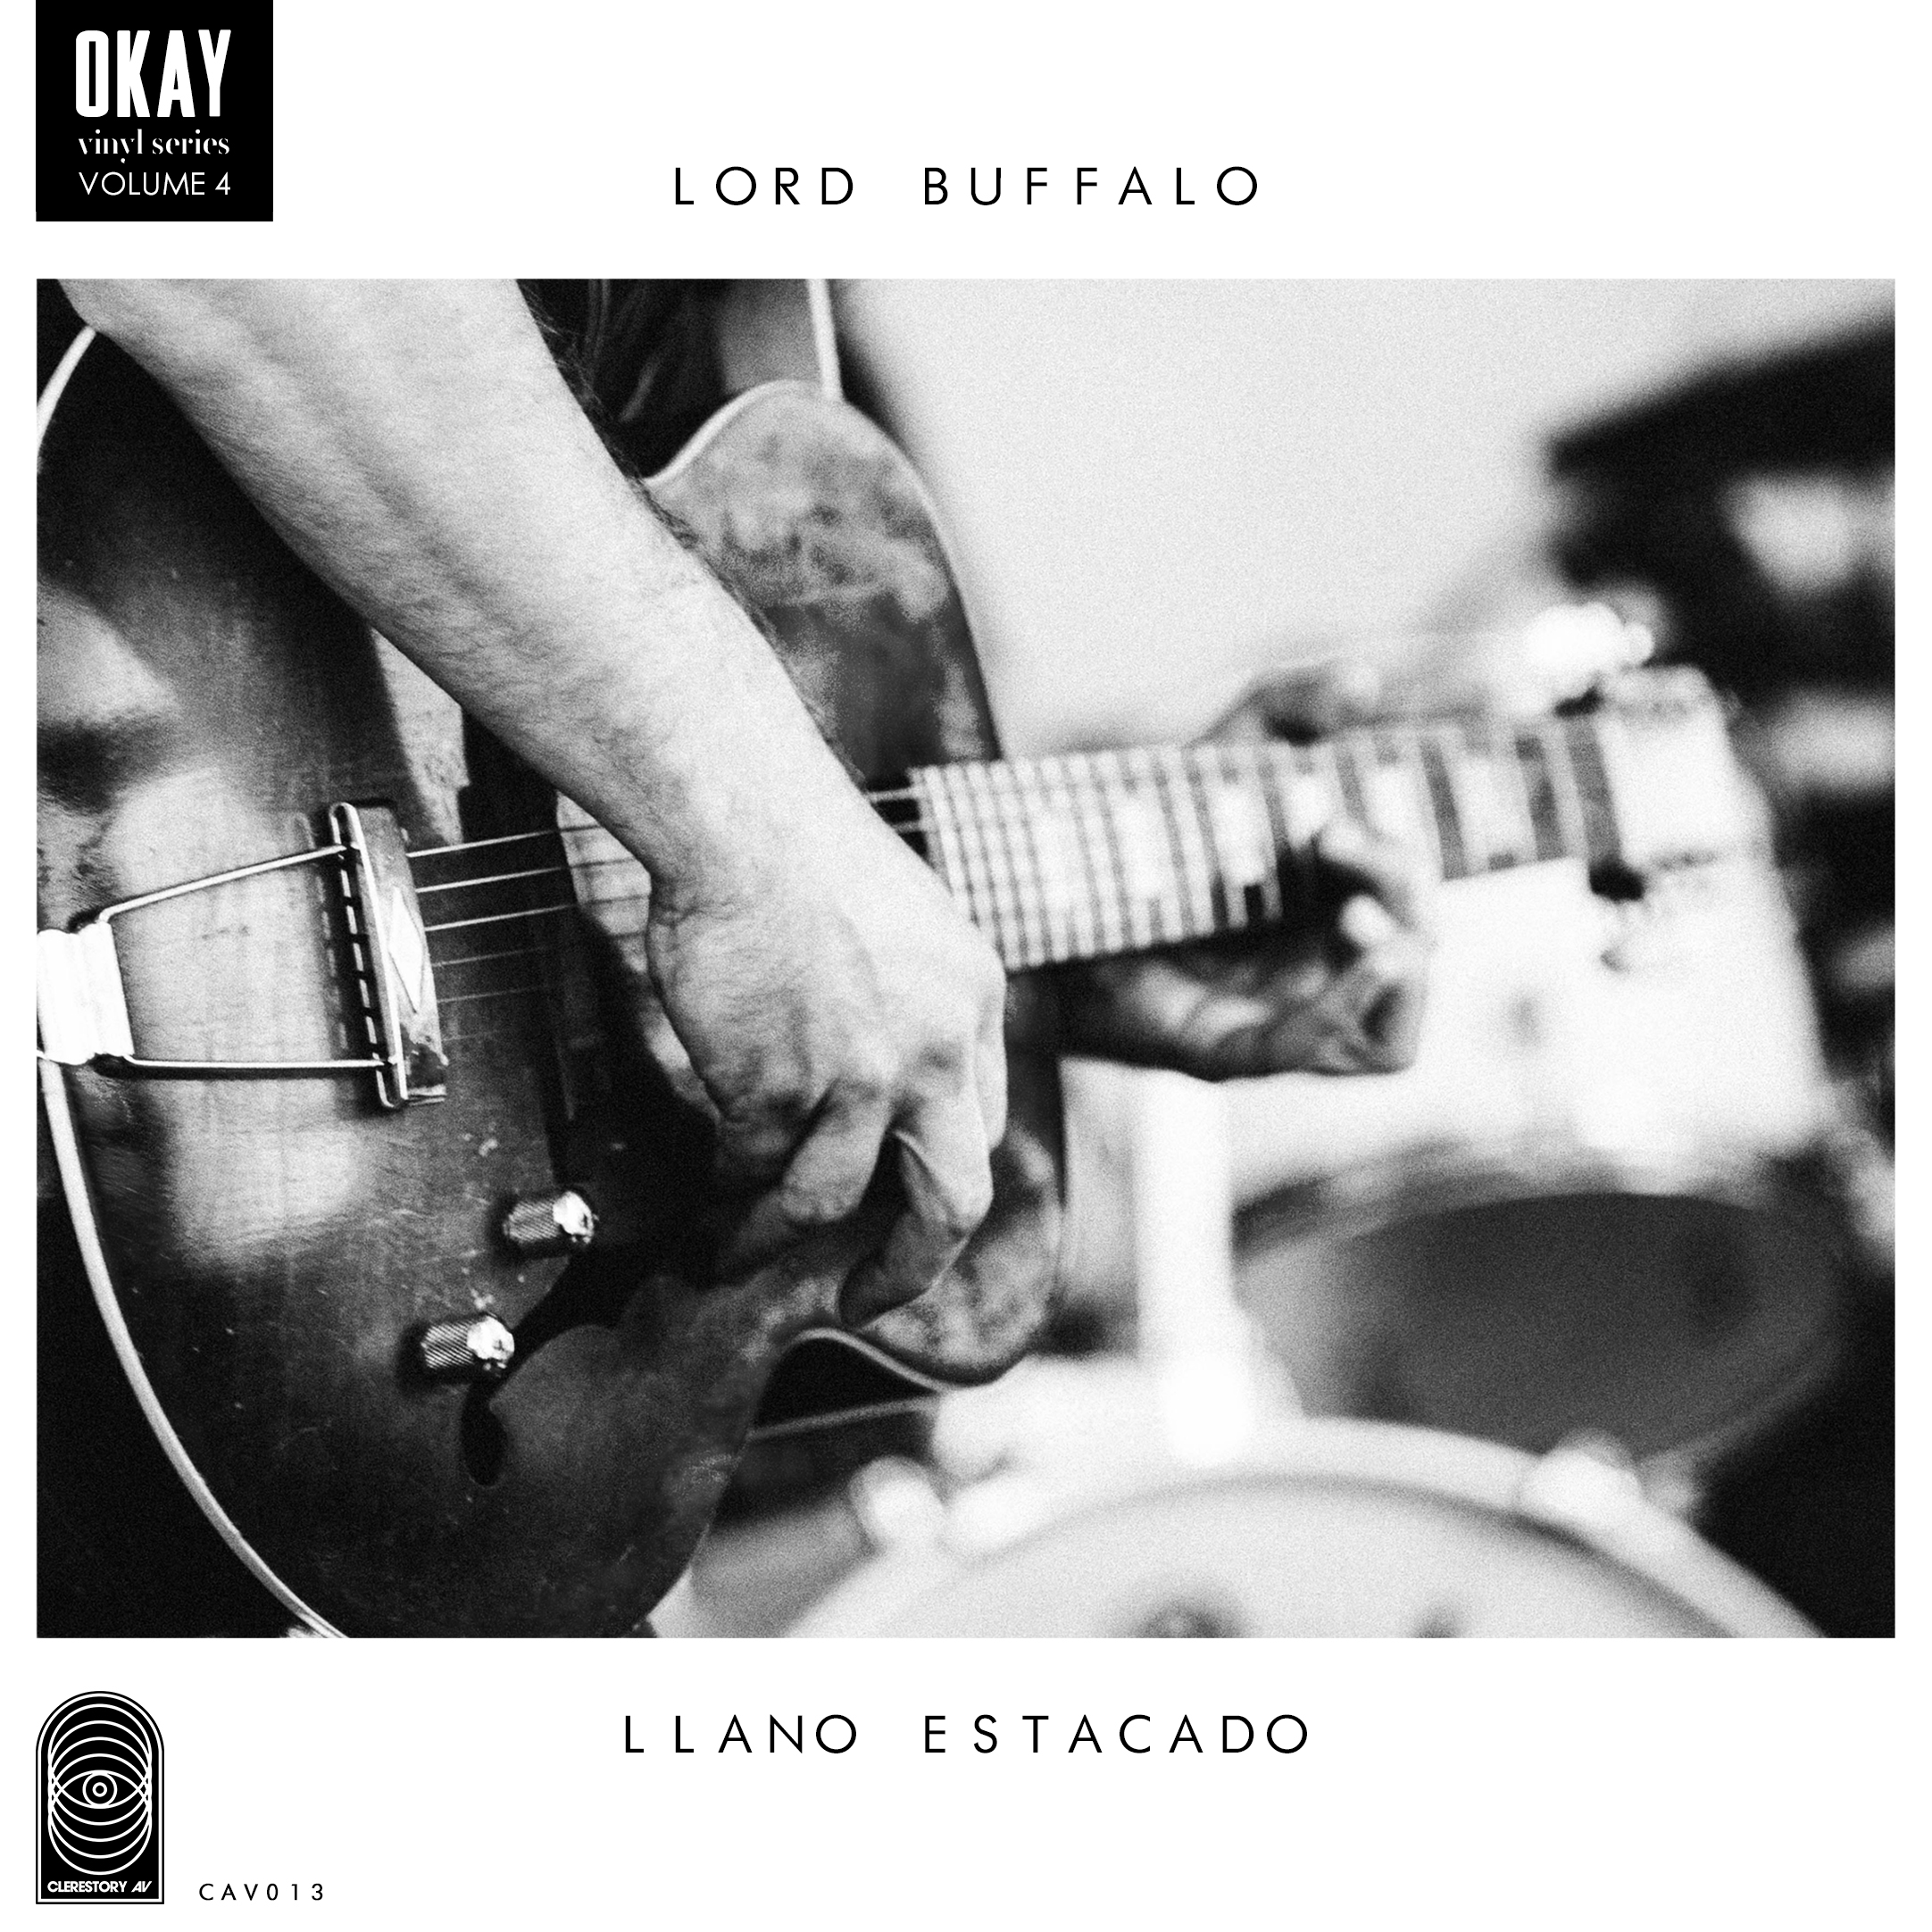 LORD BUFFALO / OKAY Vinyl Series Vol. 4